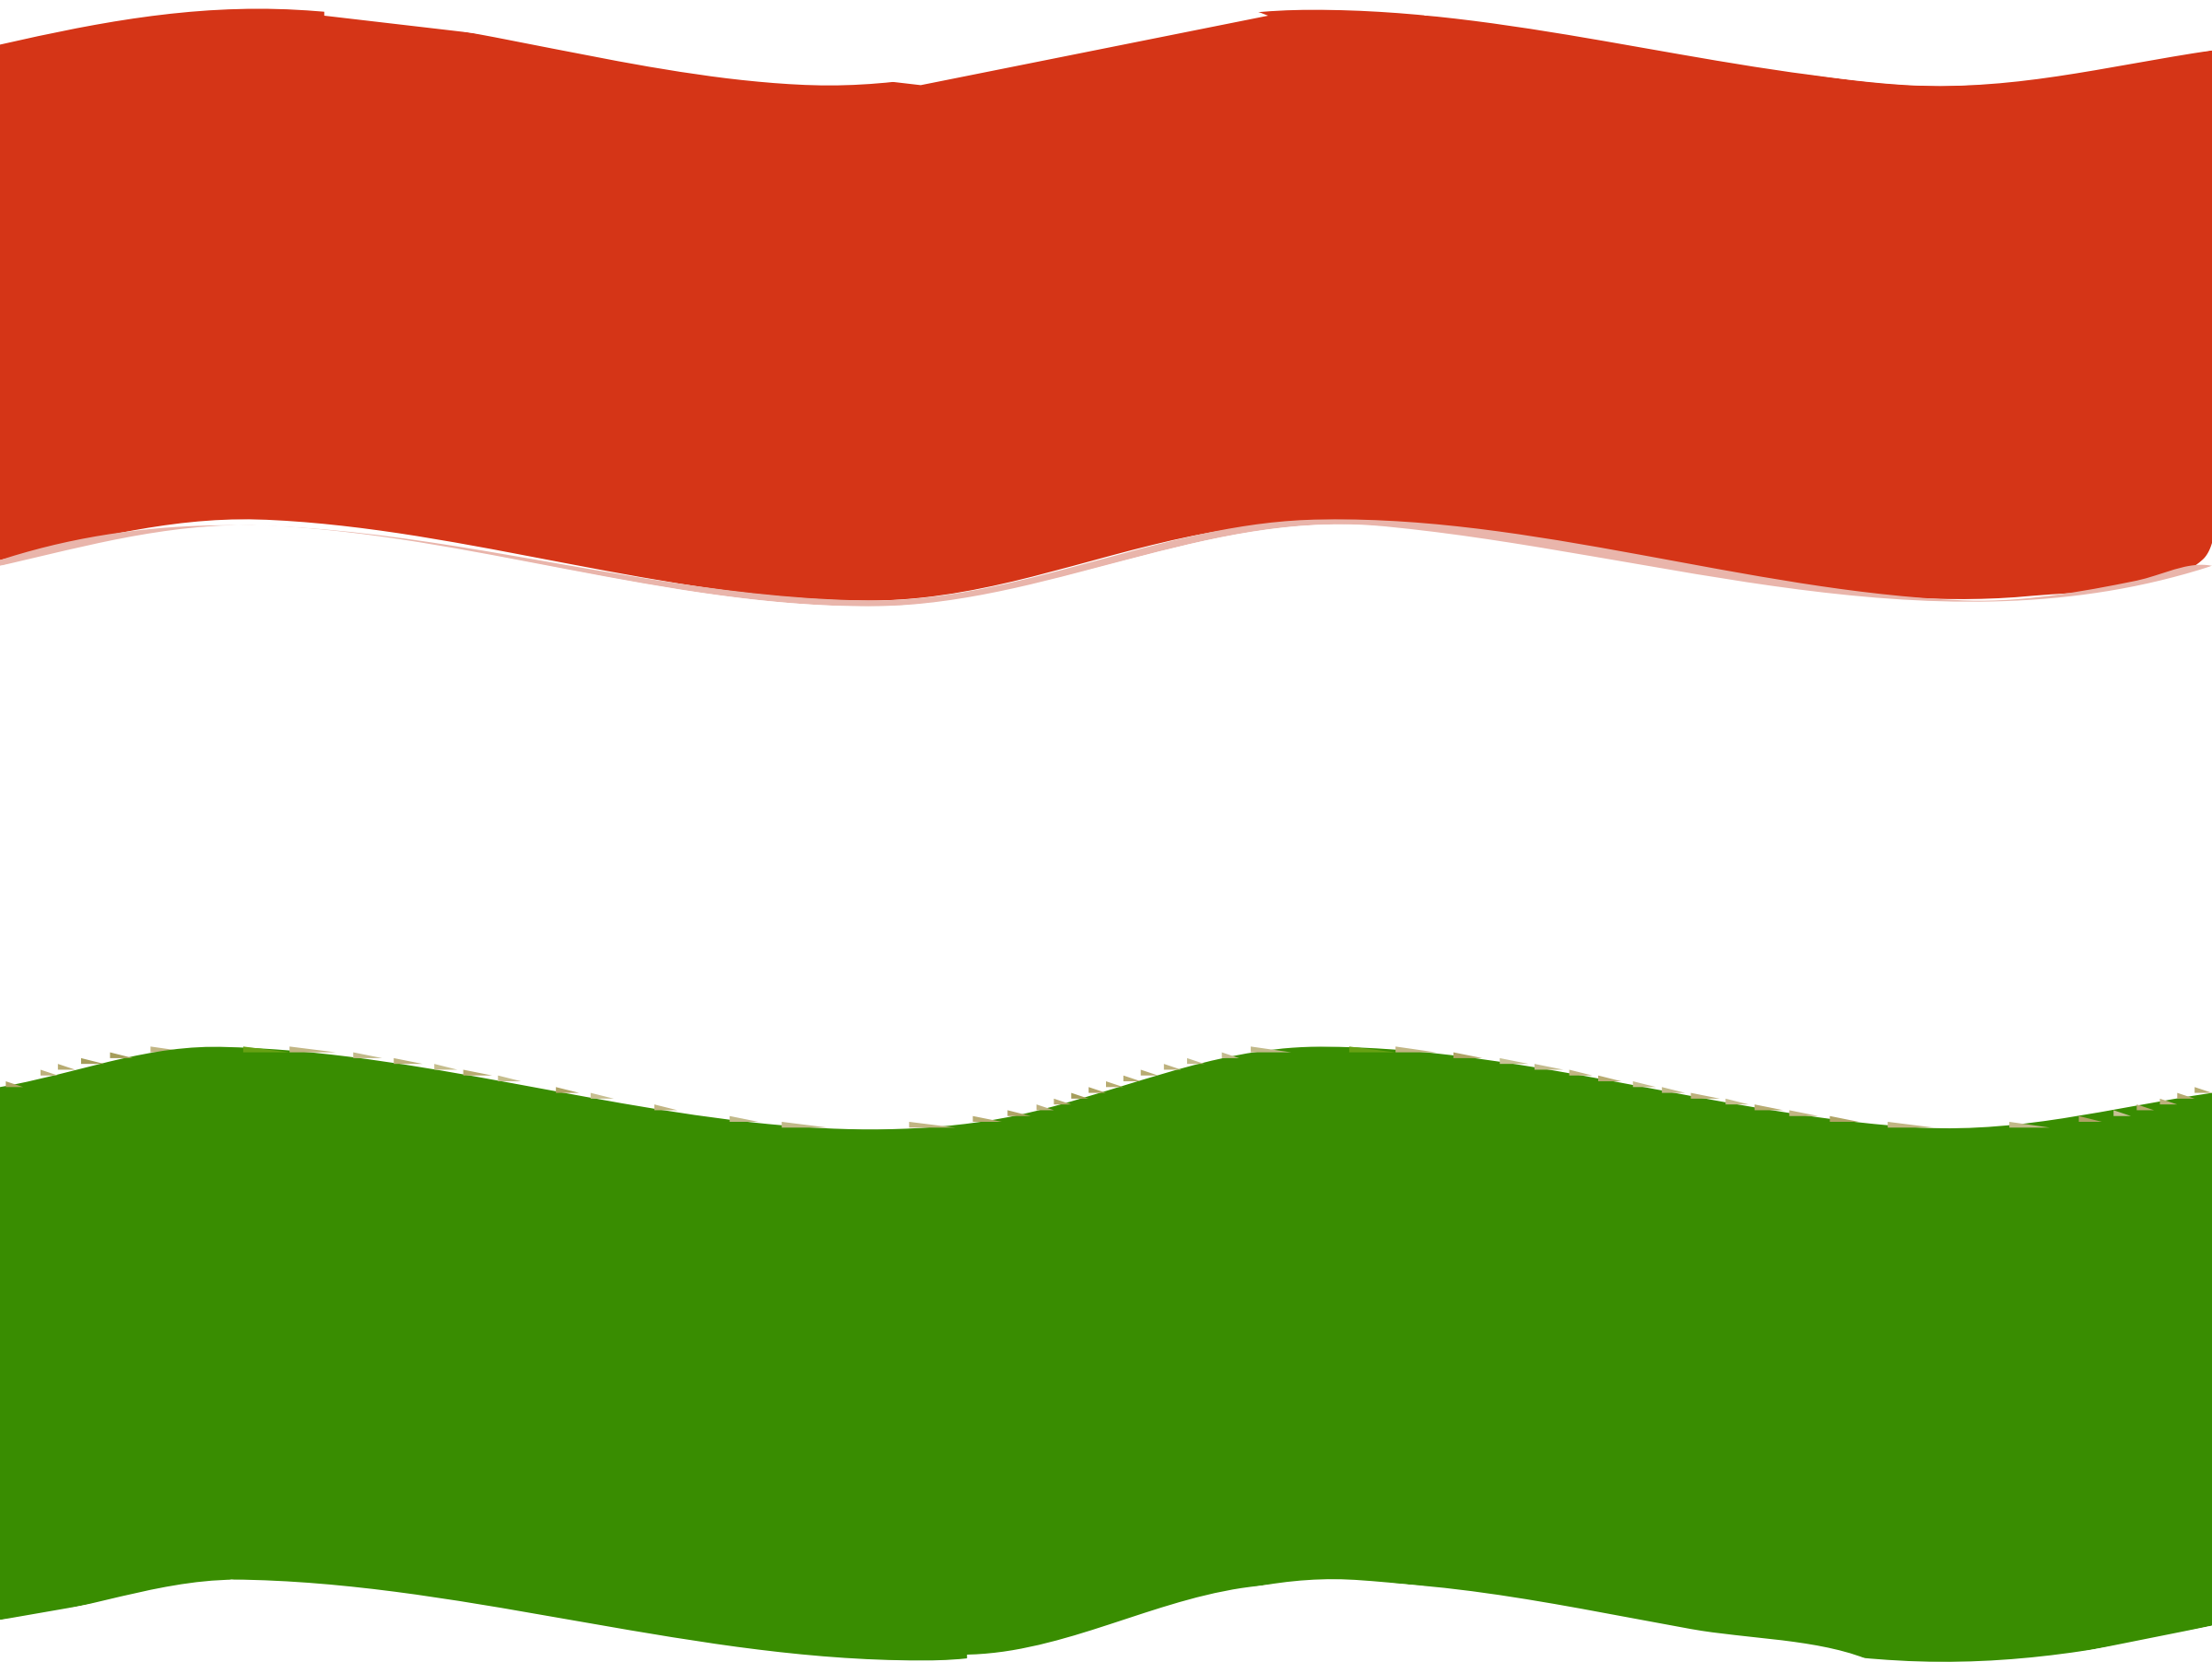 Flag Of Hungary High Quality Background on Wallpapers Vista